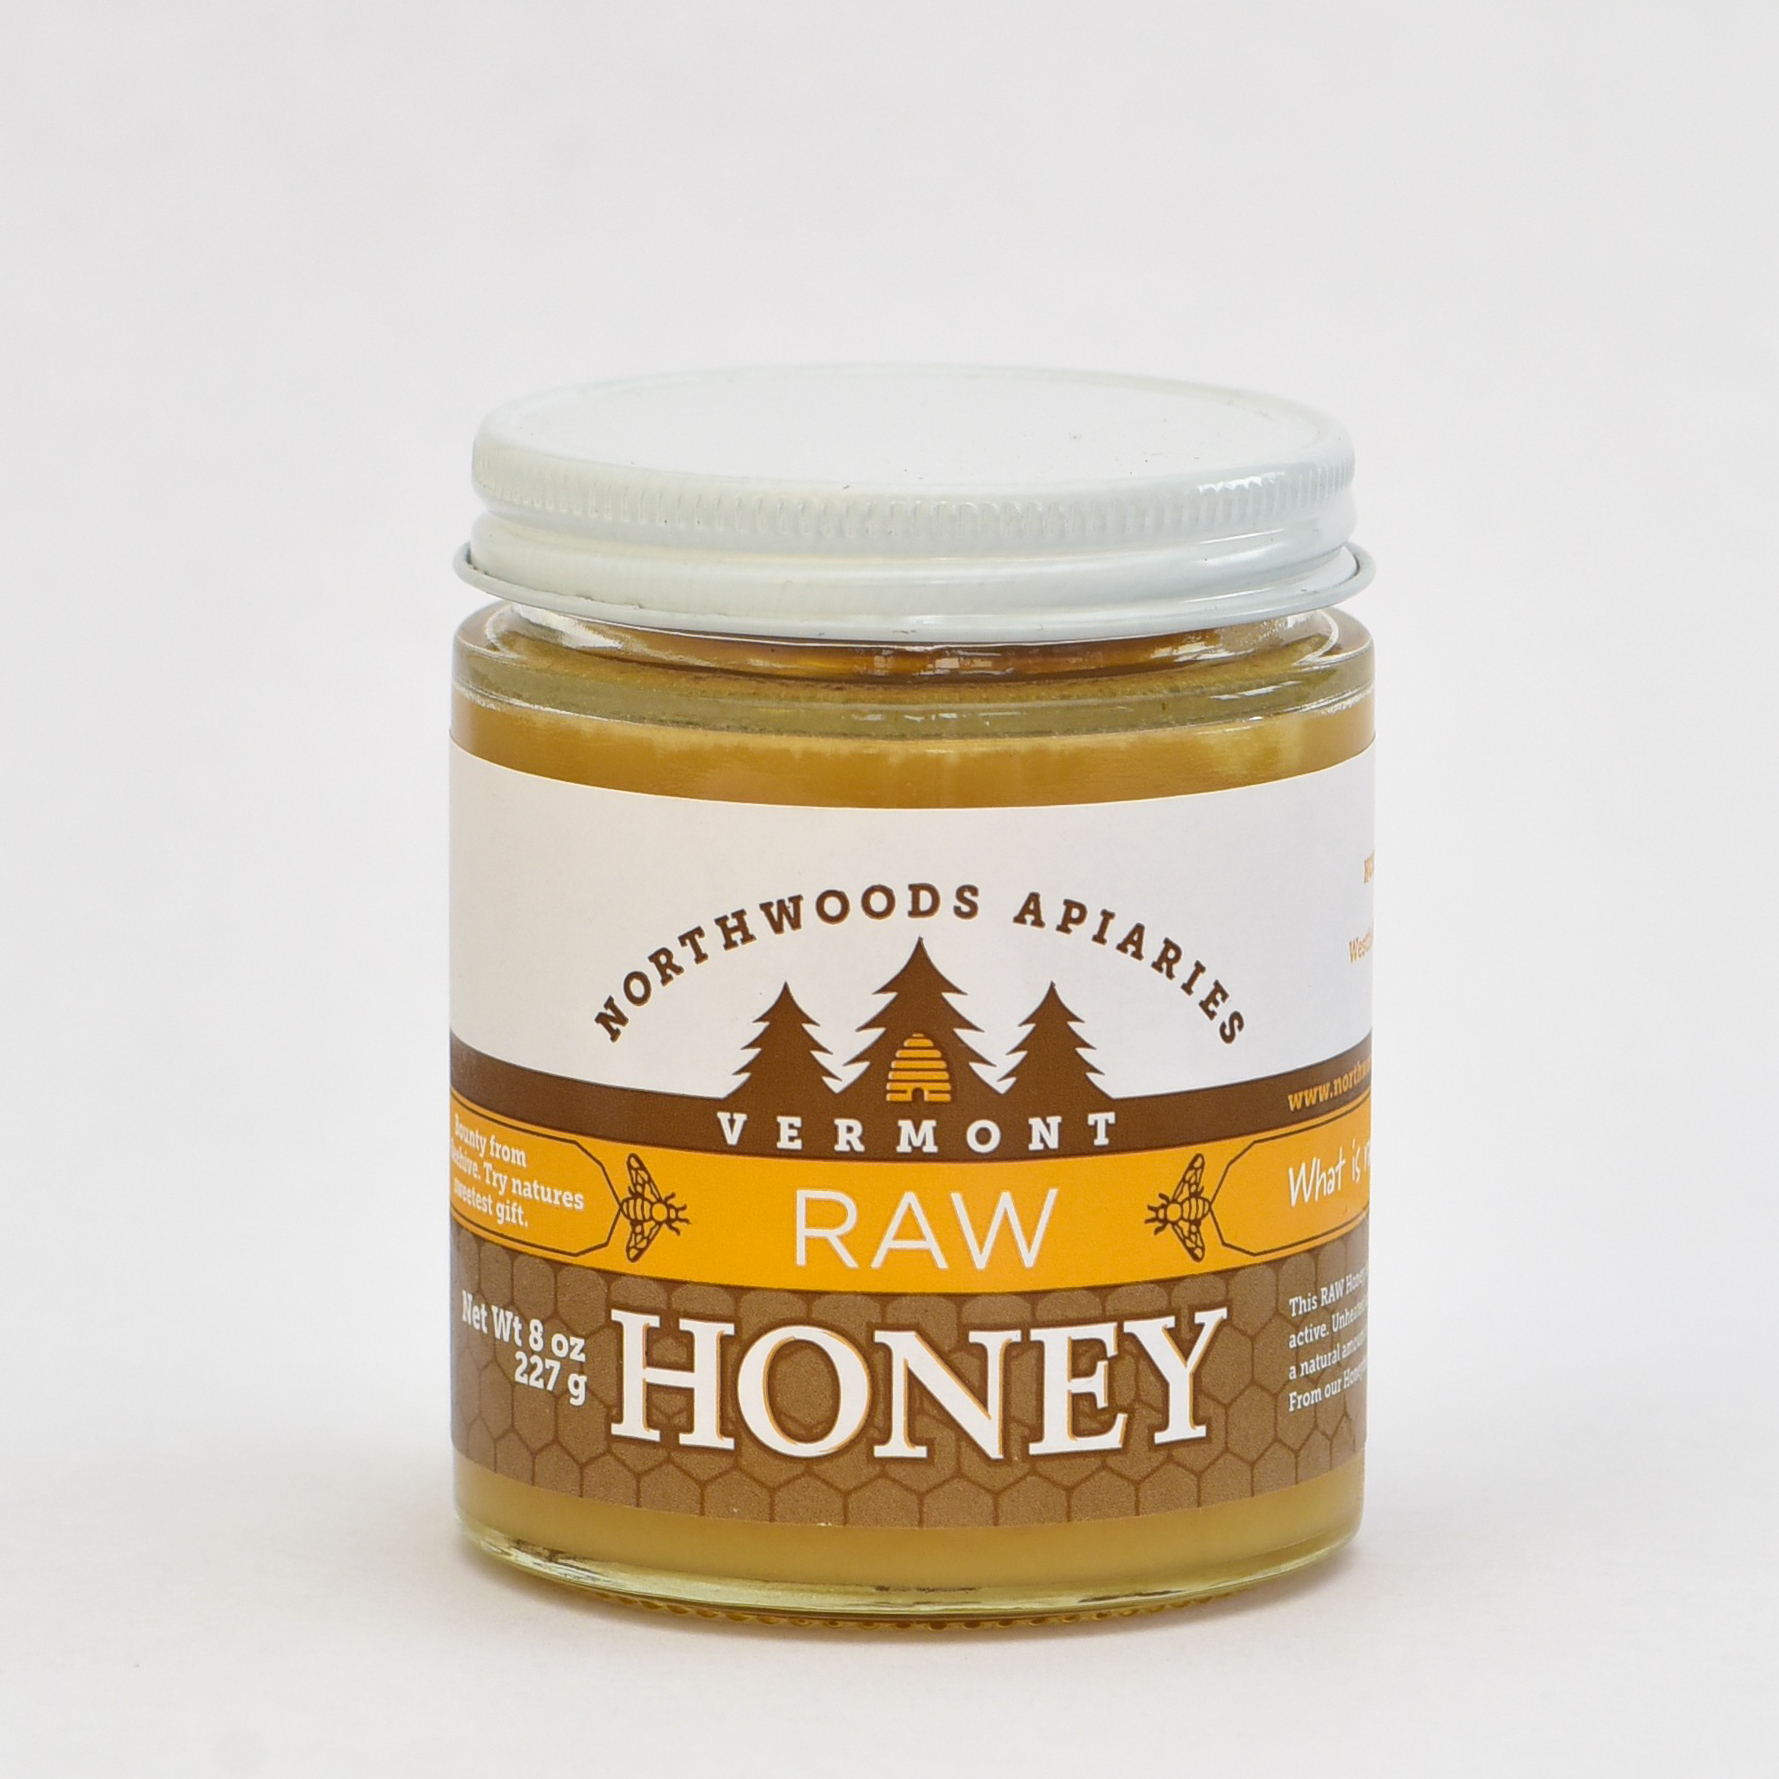 Northwoods Apiaries